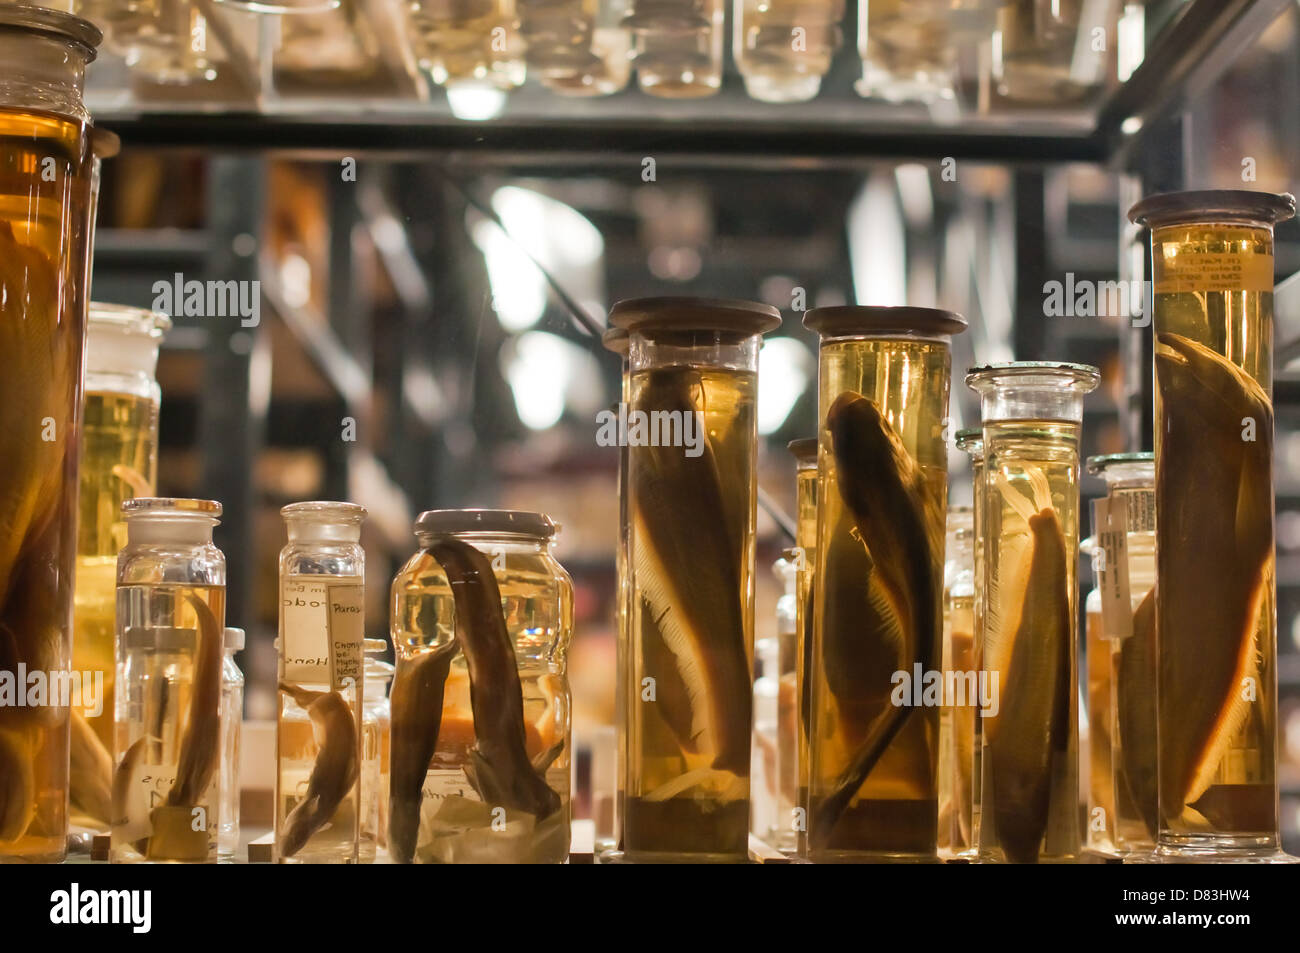 Fish specimens, kept in jars along with ethanol to preserve them - Stock Image